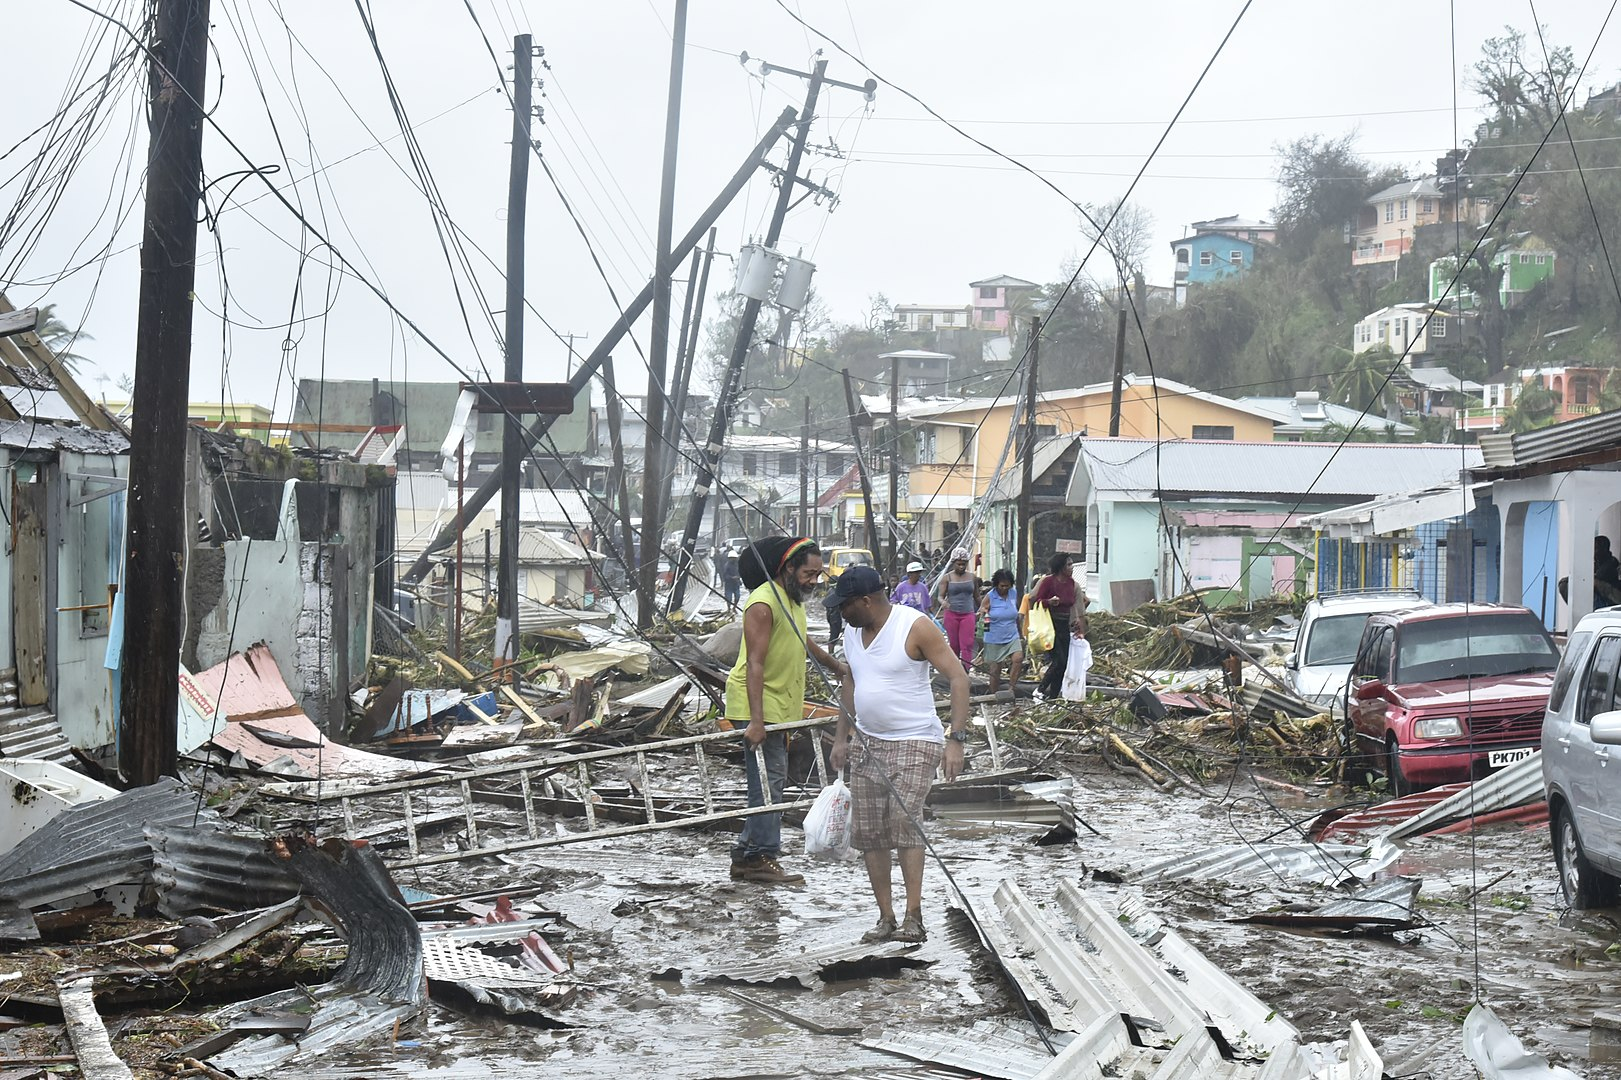 Instability In Puerto Rico Underscores Need For A More